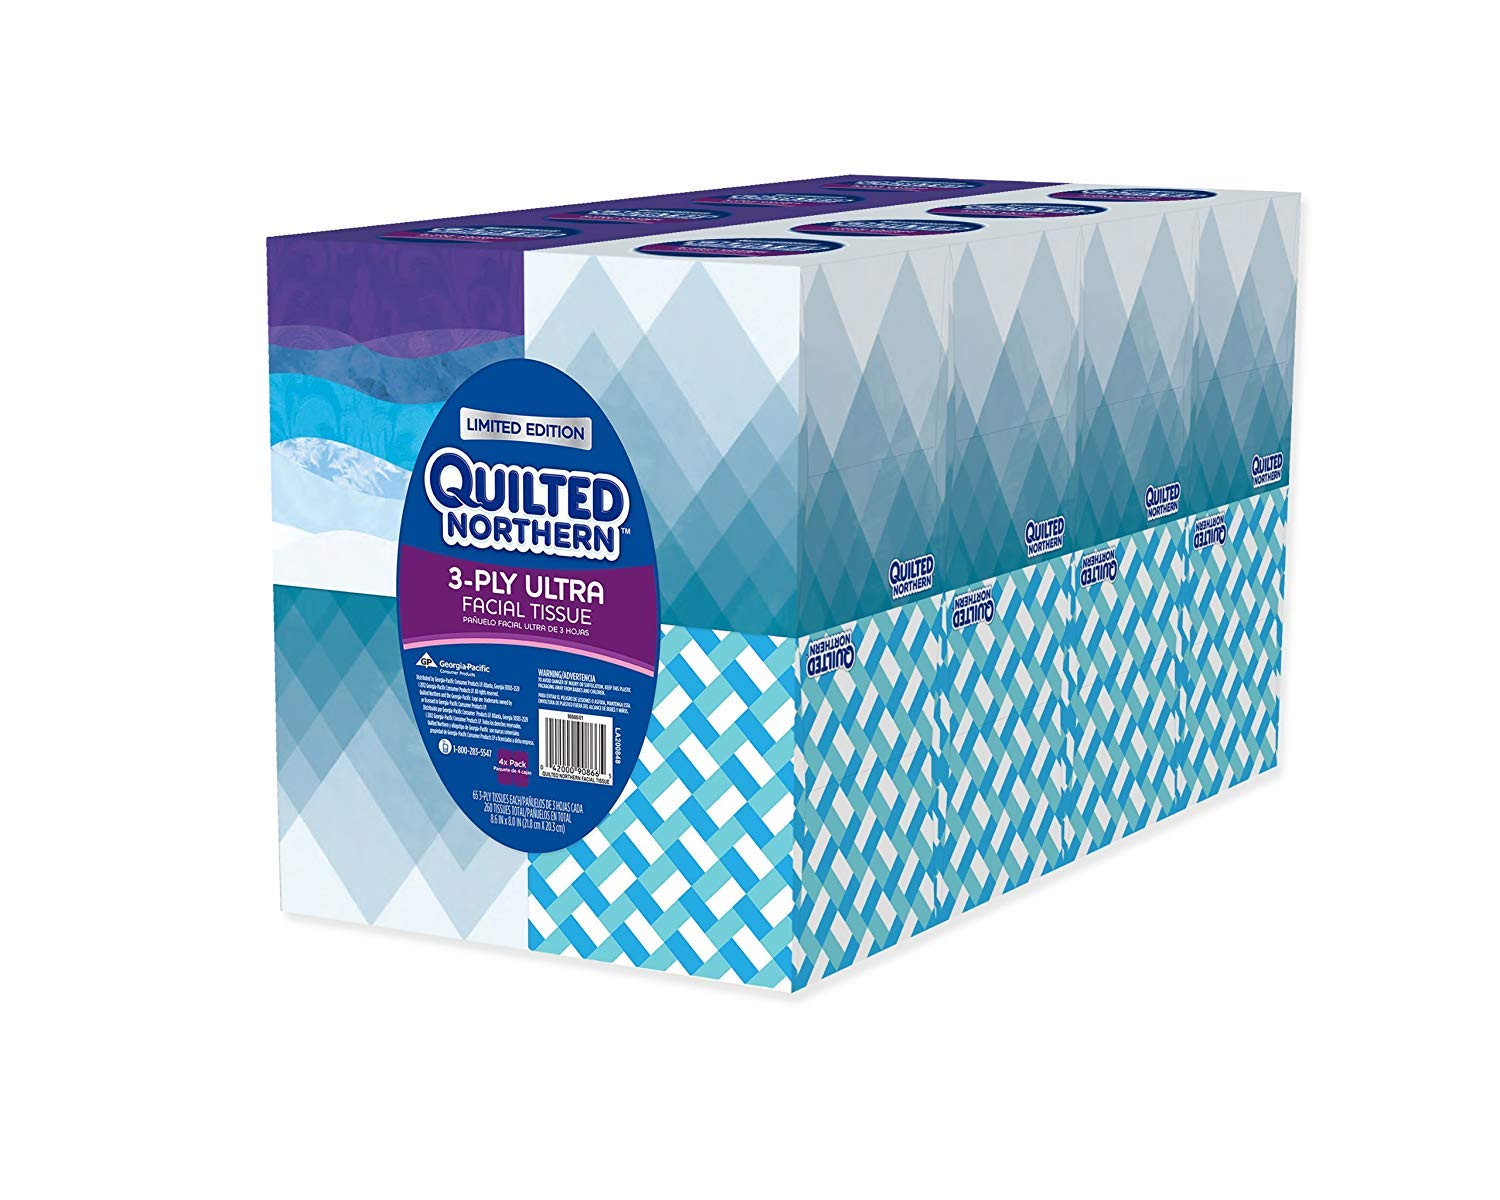 Quilted Northern Ultra Facial Tissue 65 tissue Cube - 16 Count